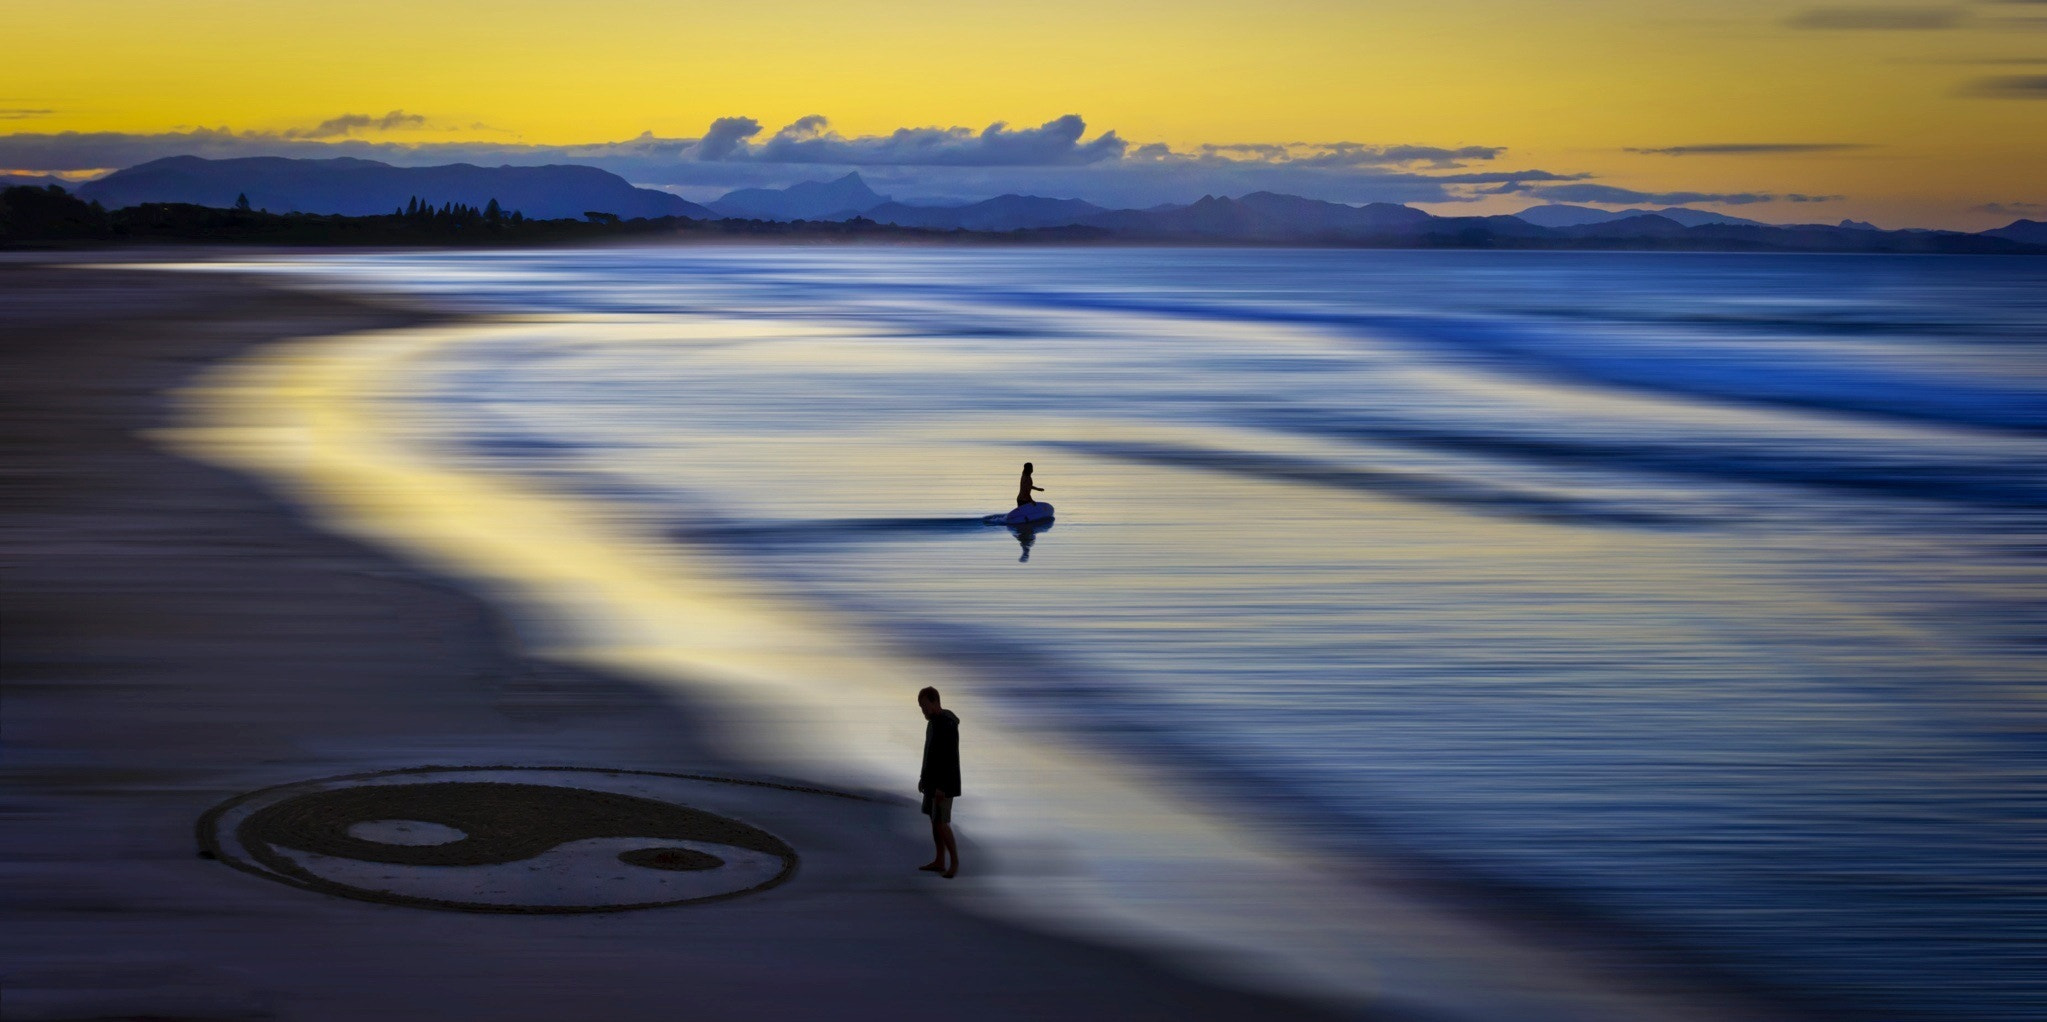 Photograph Harmony - Byron Bay by David Psaila on 500px